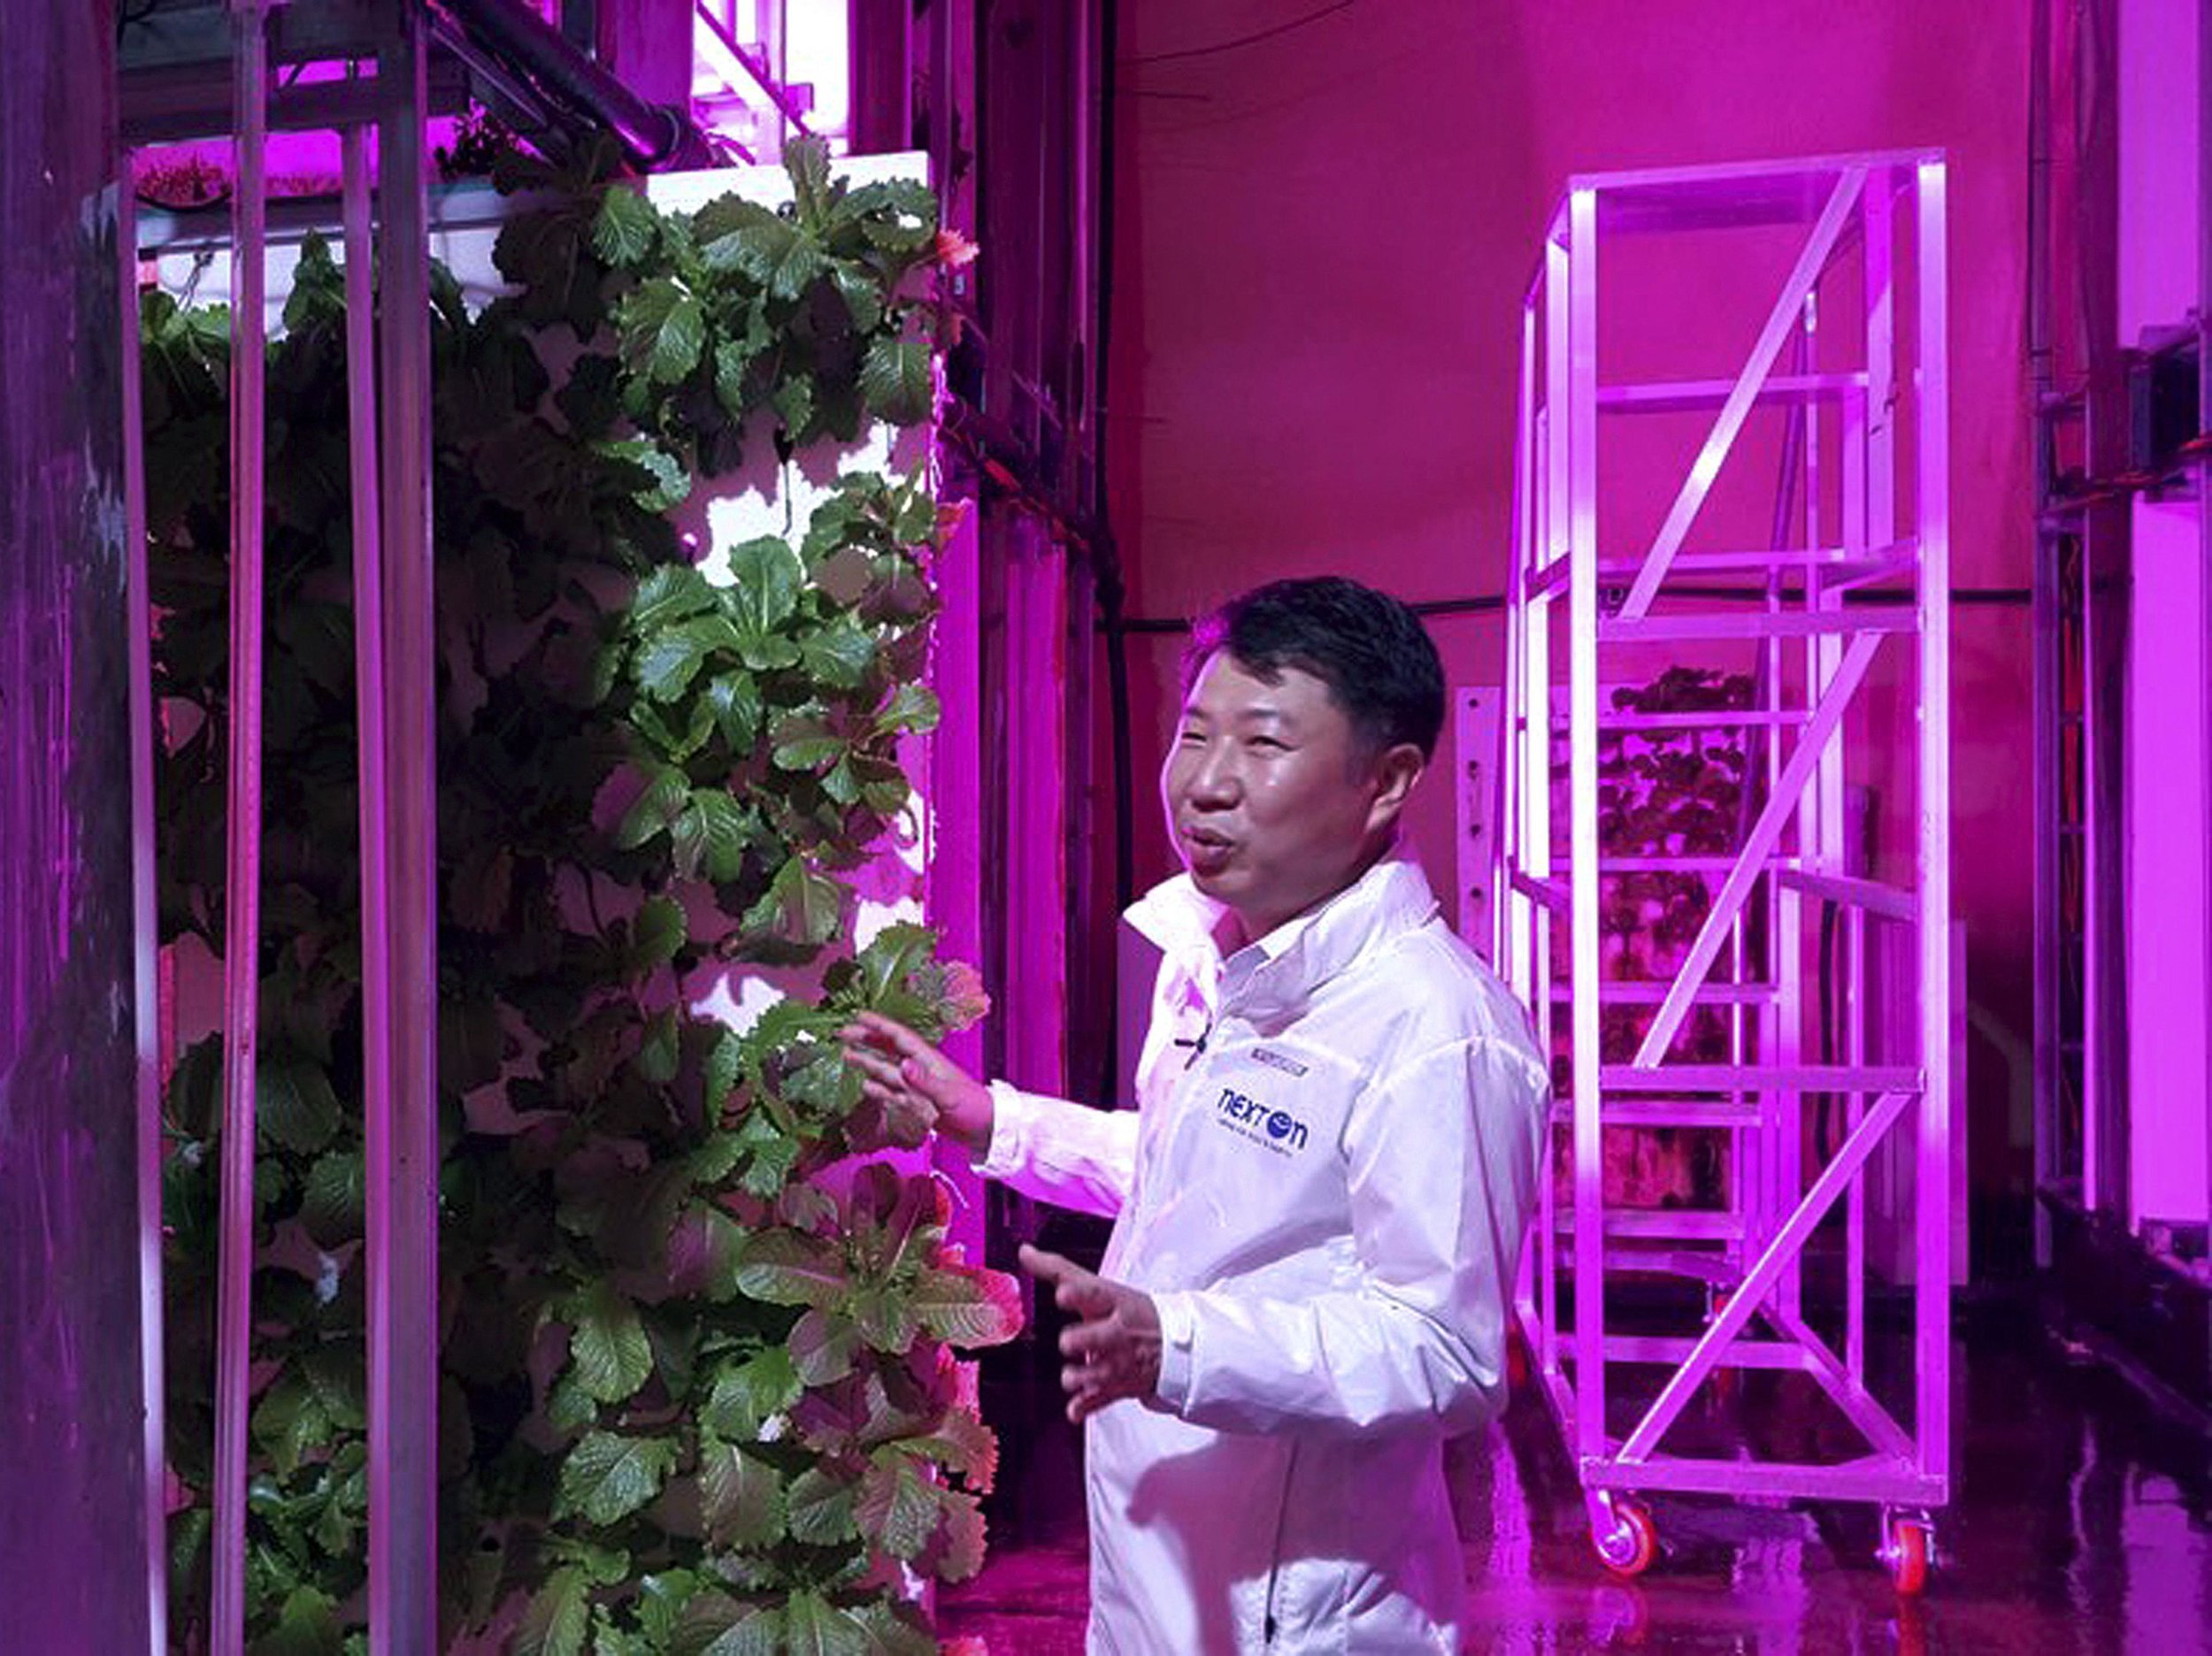 Head of NextOn Choi Jae Bin explains how his high-tech tunnel-based vertical indoor farm NextOn in Okcheon, South Korea, could be a potential solution to the havoc wreaked on crops by the extreme weather linked to climate change, and to shortages of land and workers as the country ages.Picture: AP